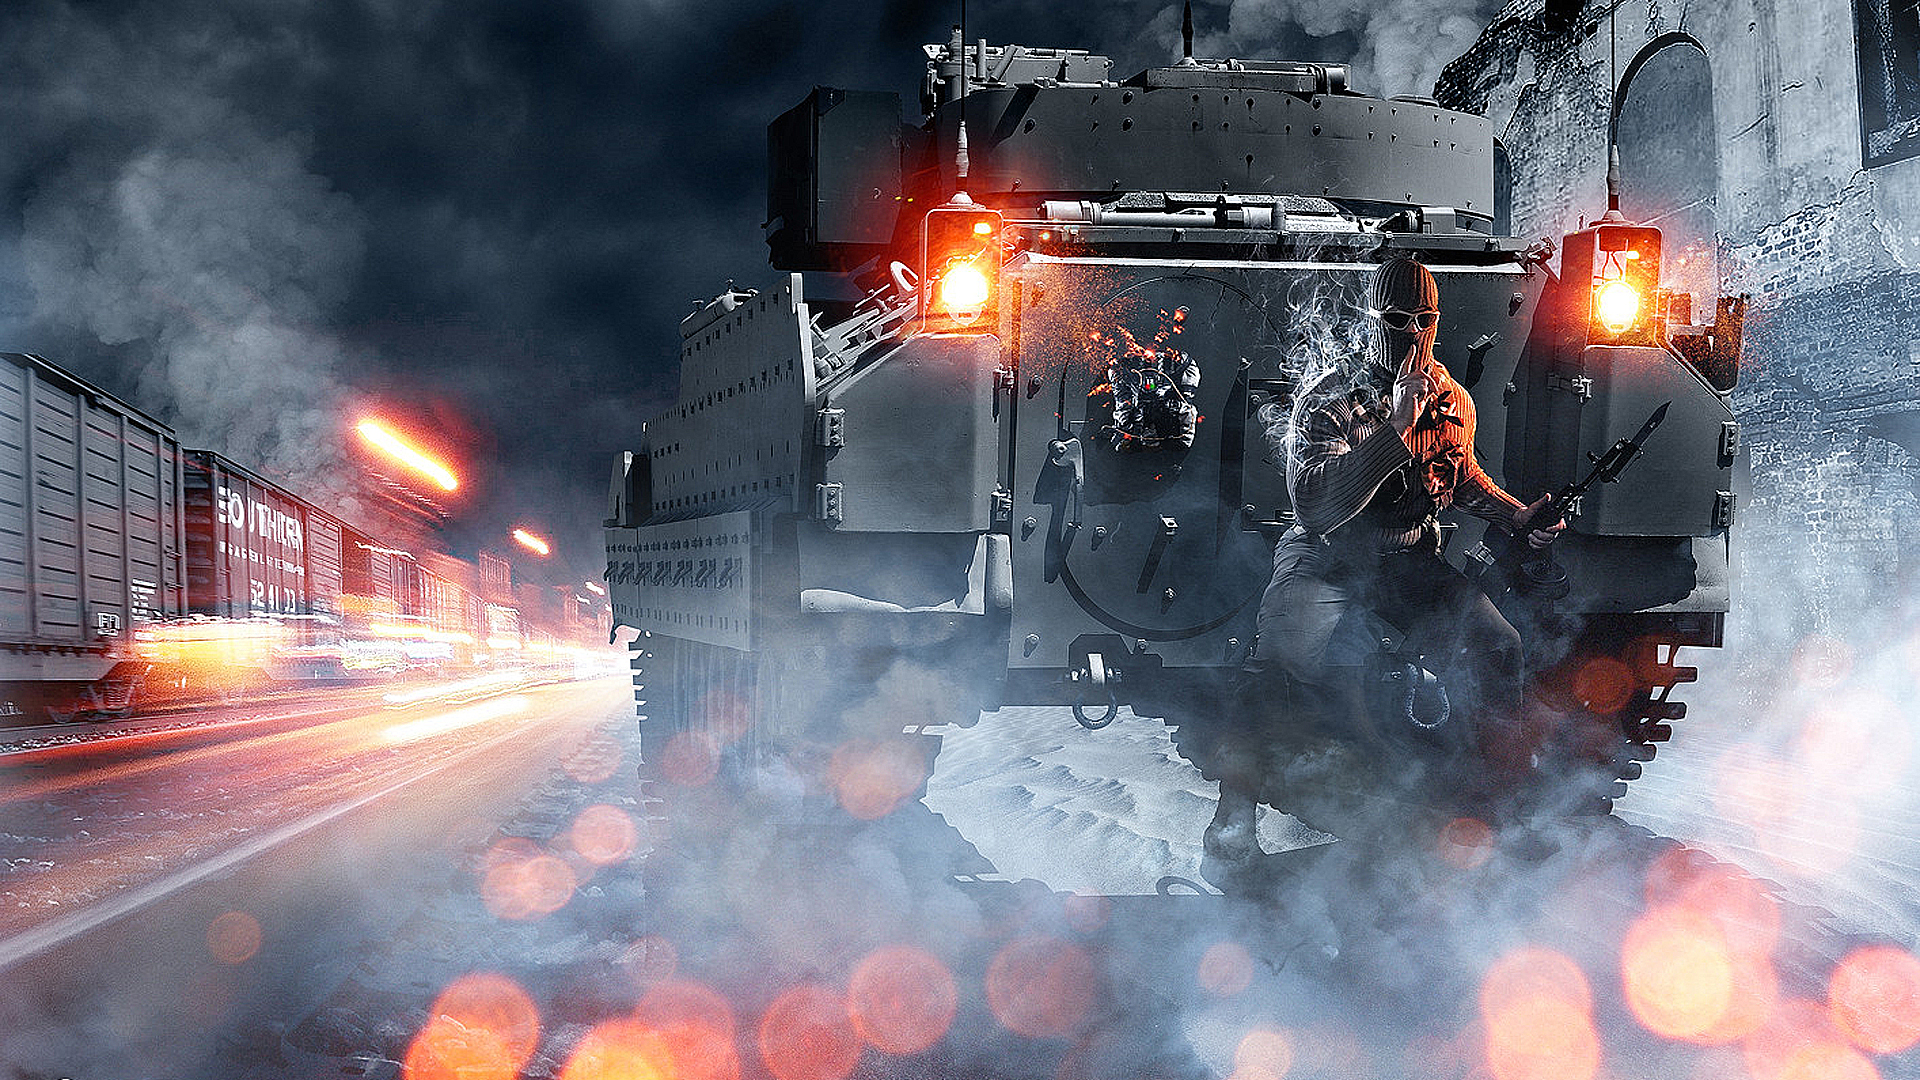 Free Fall Wallpaper For Iphone 6 Battlefield 3 High Resolution Hd Wallpapers All Hd